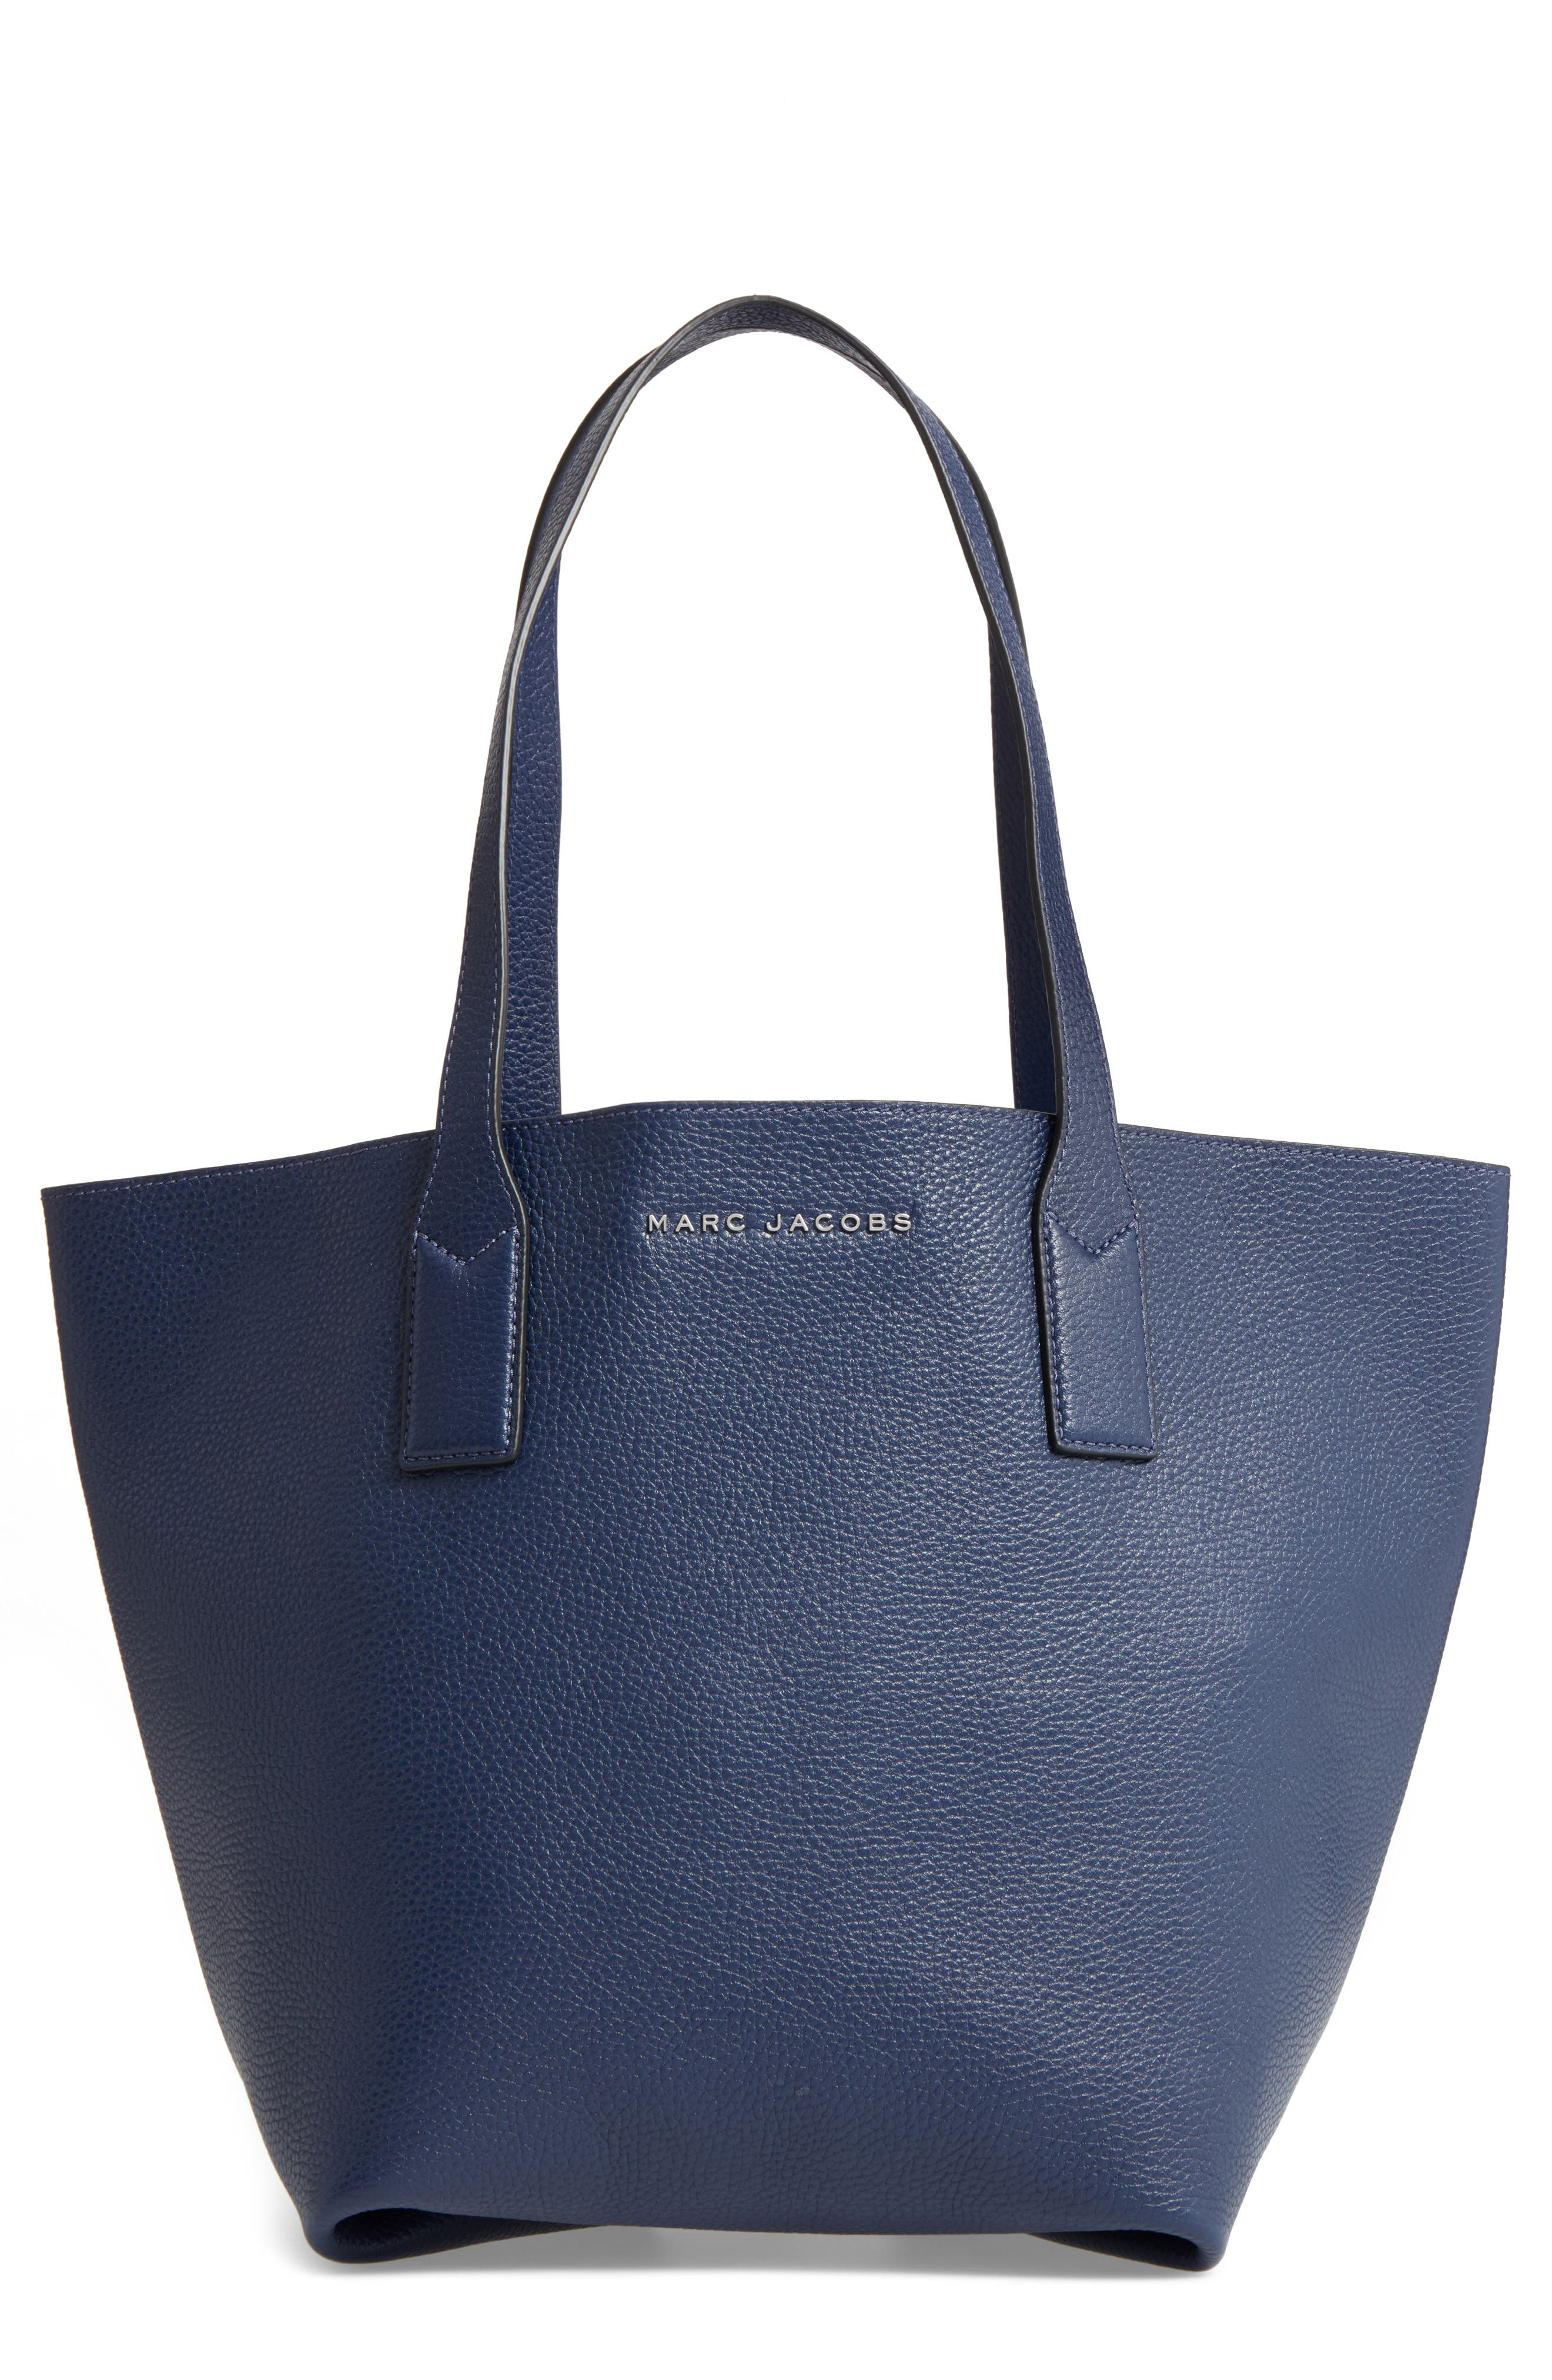 MARC JACOBS 'Wingman' Leather Shopping Tote